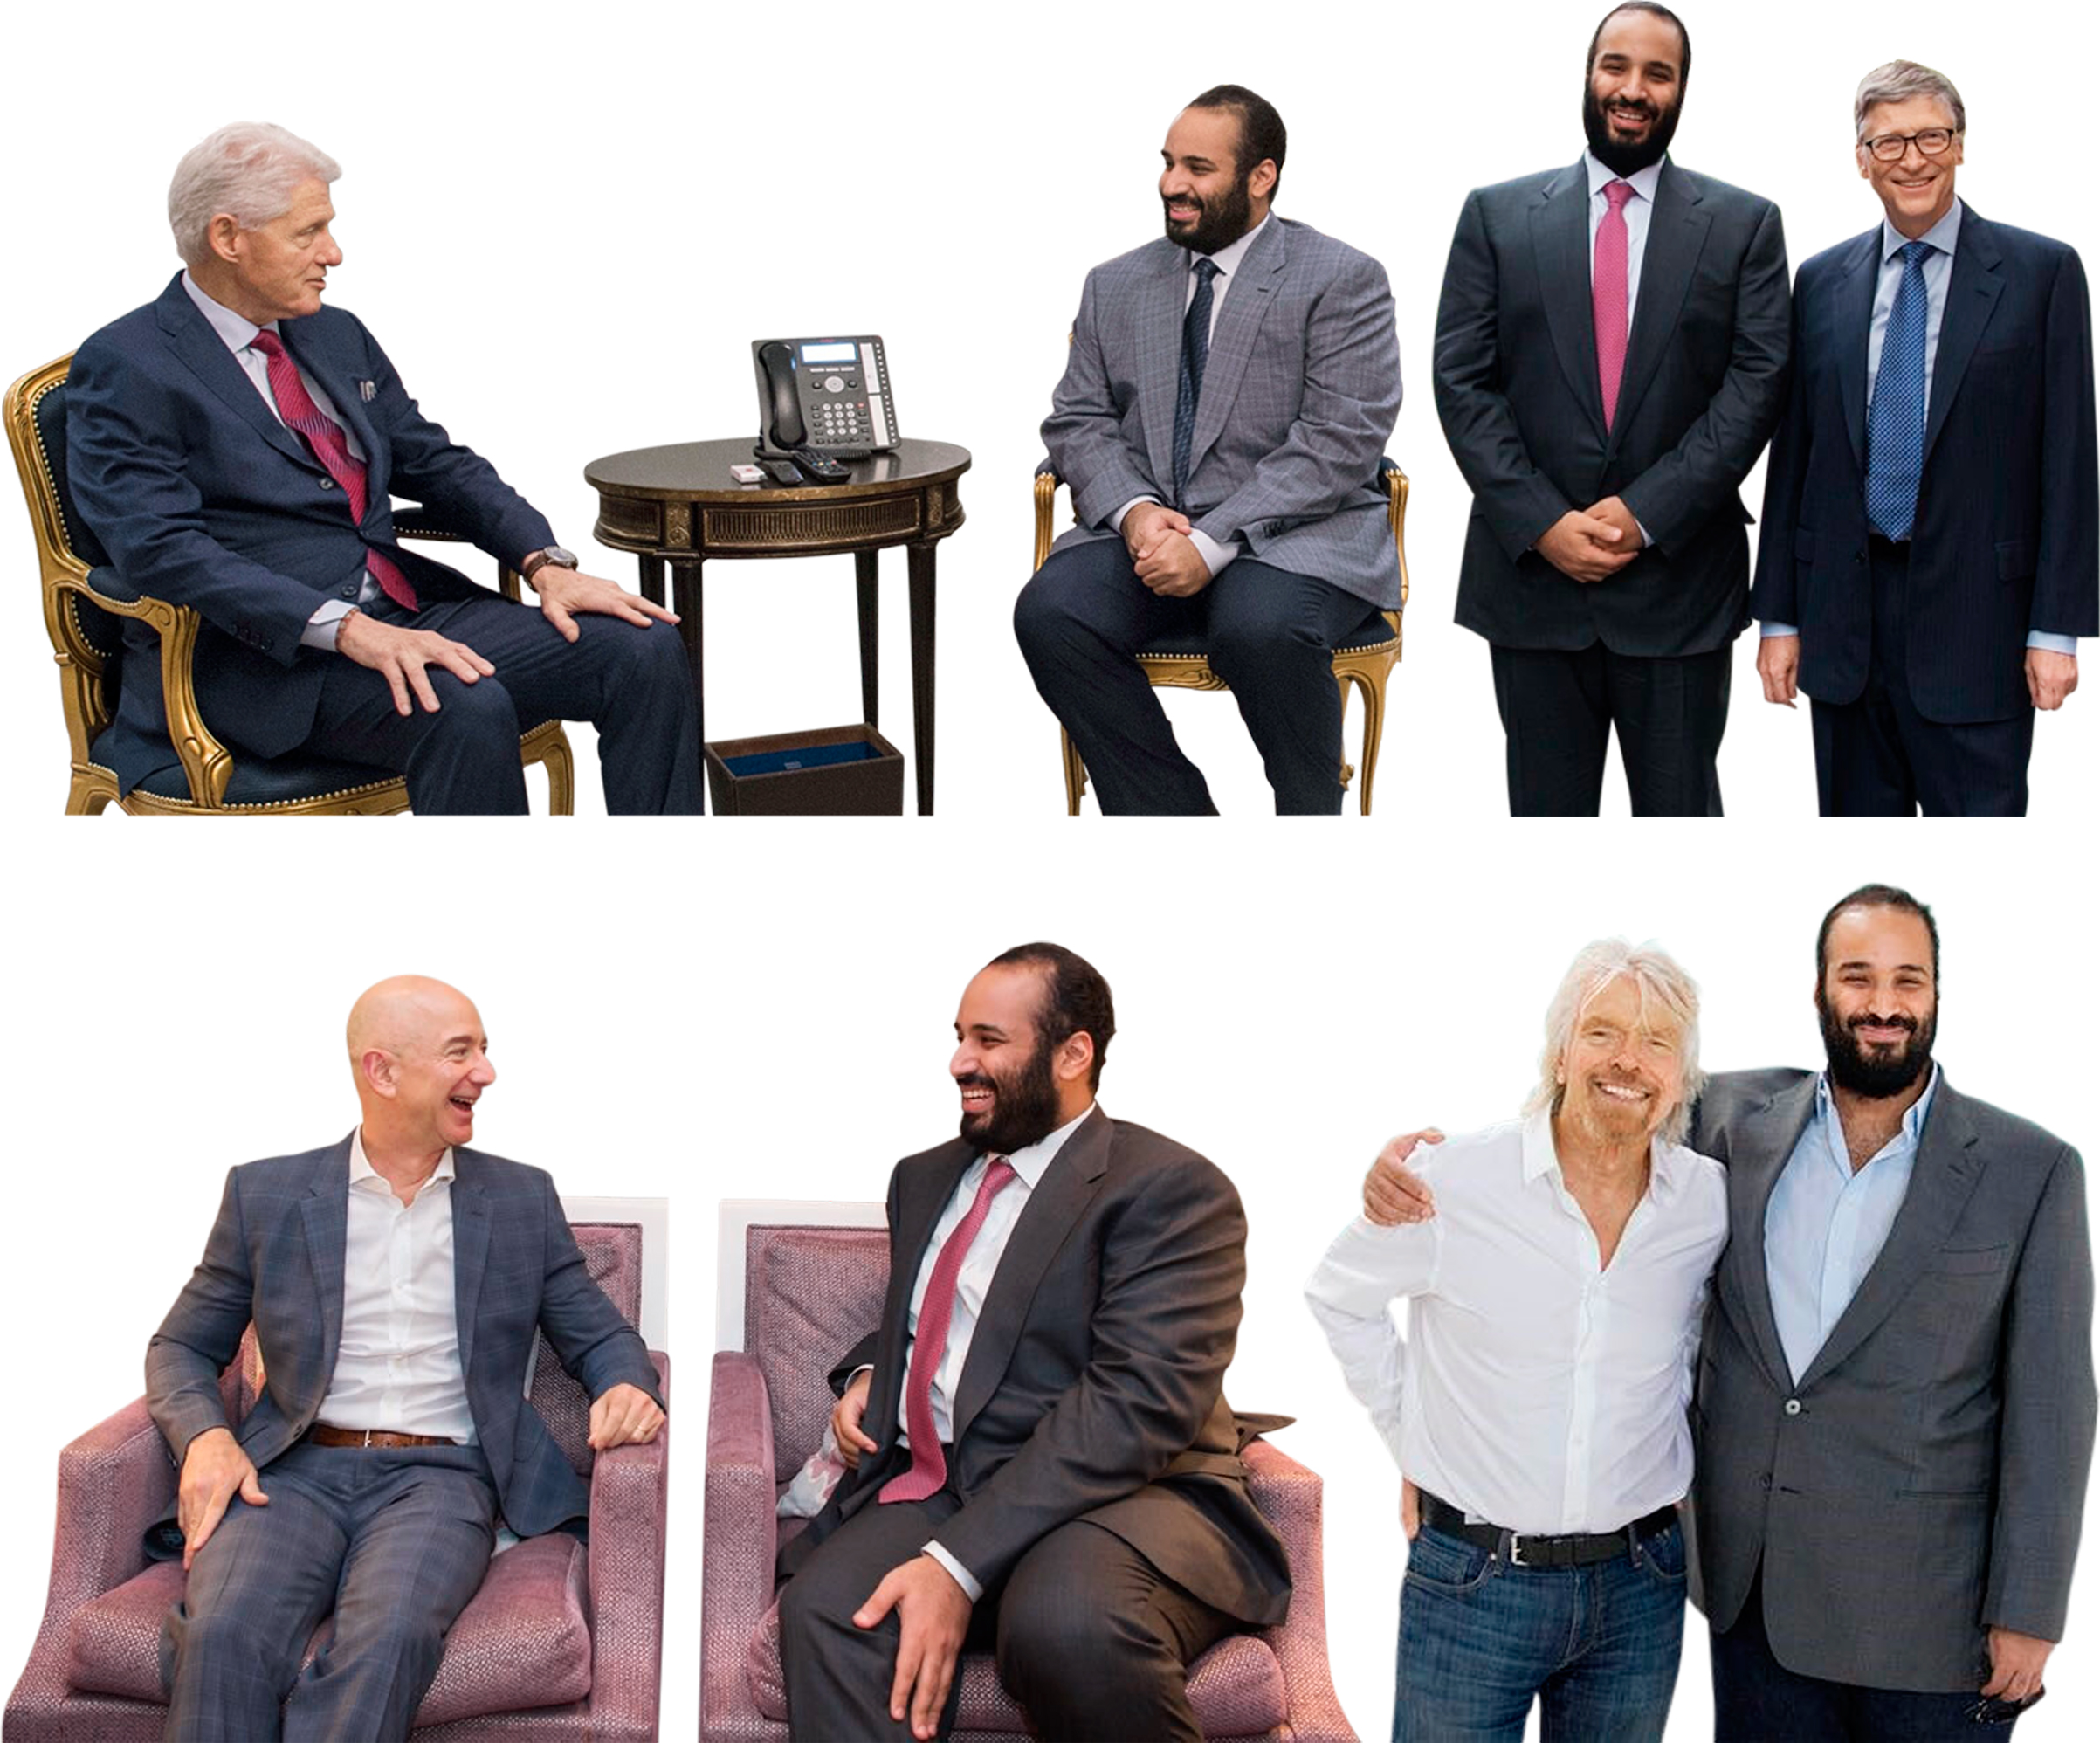 Bin Salman meets with Bill Clinton in New York City, Bill Gates and Jeff Bezos in Seattle, and Richard Branson in the Mojave Desert, Calif.